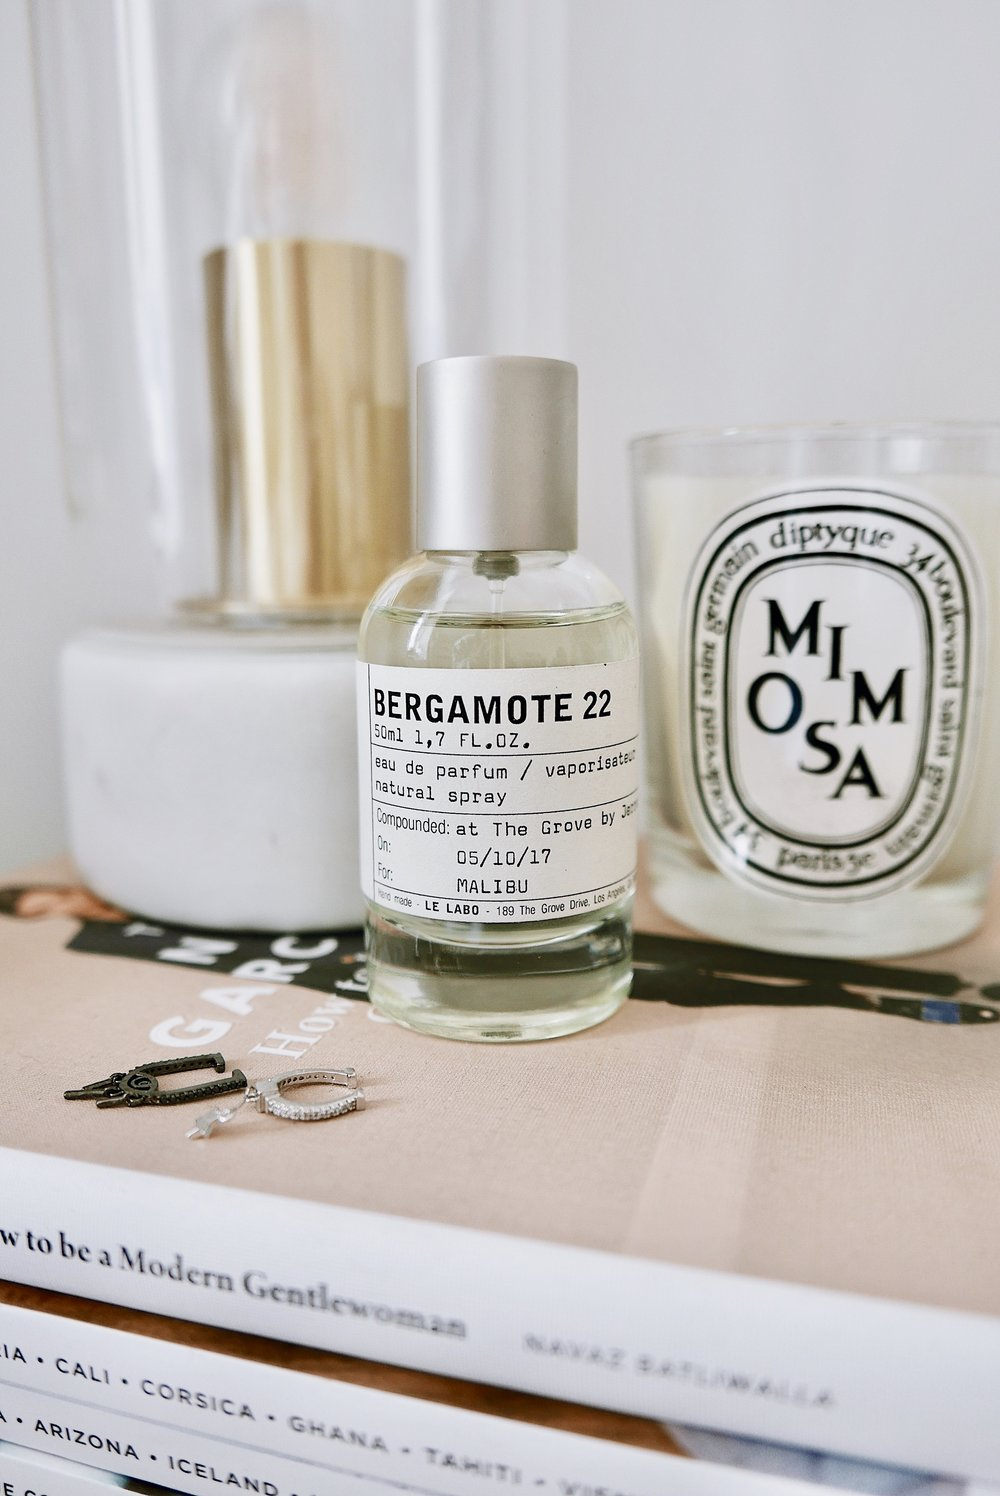 LE LABO 'BERGAMOT 22'  - NOTES - VETIVER, ORANGE BLOSSOM AND CEDAR WOODI love Le Labo but I know it's quite pricey.  This is actually my first Le Labo purchase so I know I wanted it to be a scent that can carry me from day to night but also fun and refreshing. I've found that lately I've also been drawn to citrus scents which I've never liked before. I guess you change your preferences as you grown up. With Le Labo, I love how you can personalised the label which is one of the luxury touches the brand offers. I ended up naming this fragrance after my day tip to Malibu back in May (was one of the best days I've experienced) and it just holds such a special memory close to my heart.  Le Labo Bergamote 22 available here